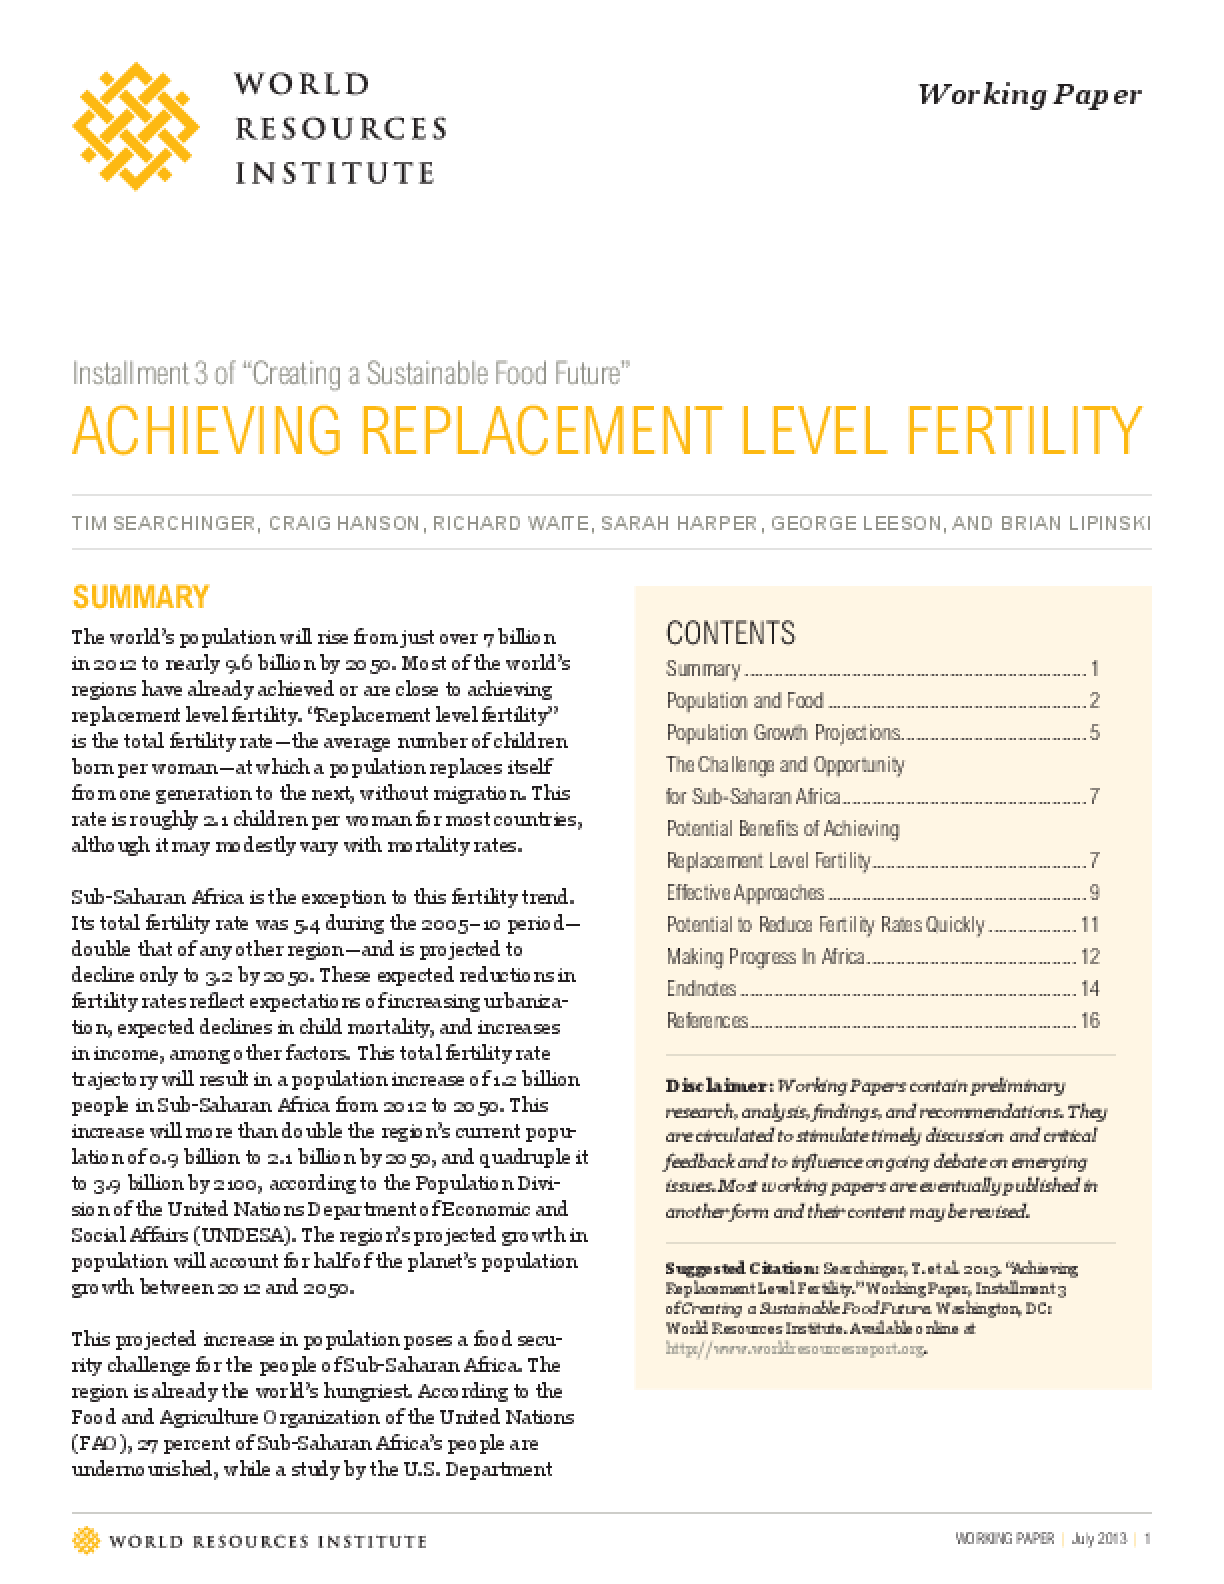 """Installment Three of """"Creating a Sustainable Food Future"""": Achieving Replacement Level Fertility"""